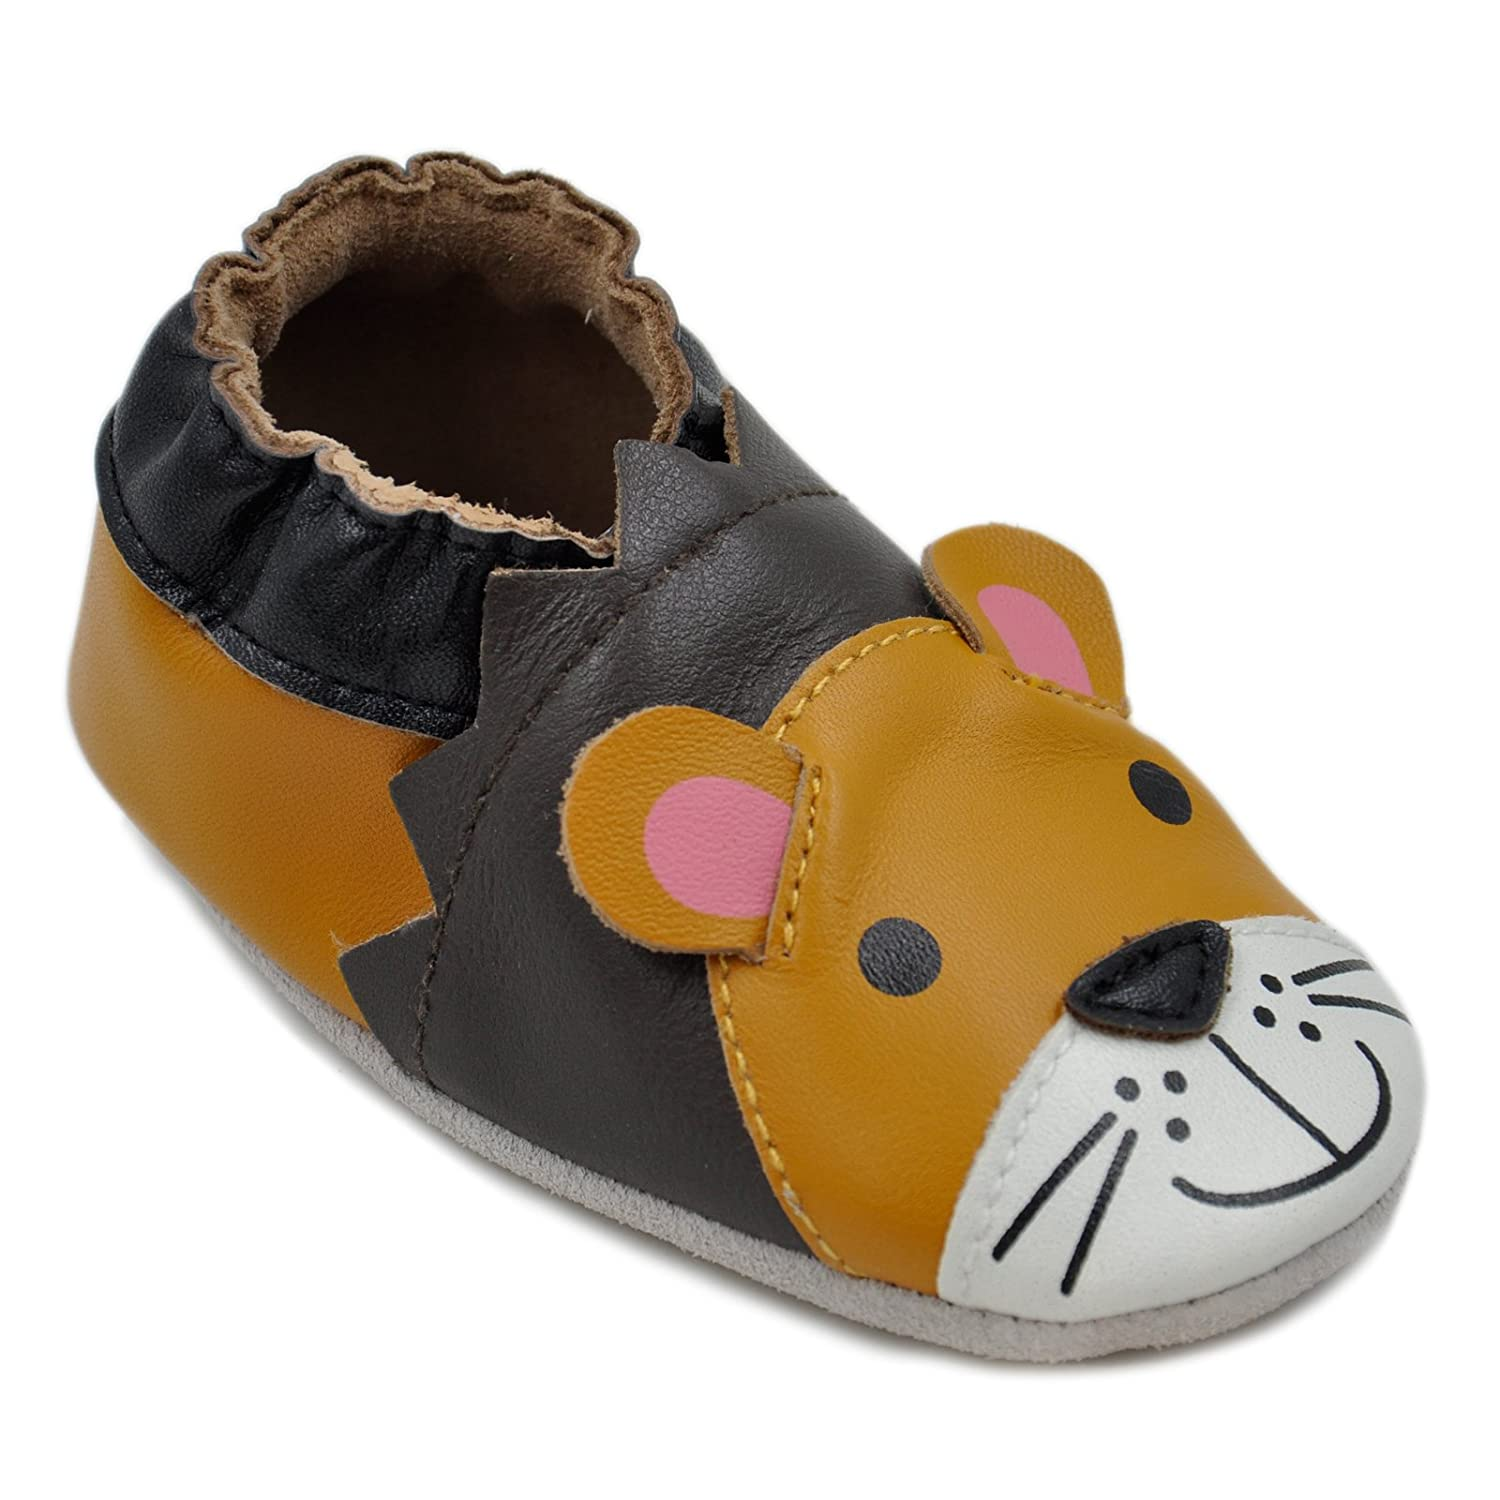 Kai Baby Boys Lambskin Leather Soft Sole Shoes Lion Kimi